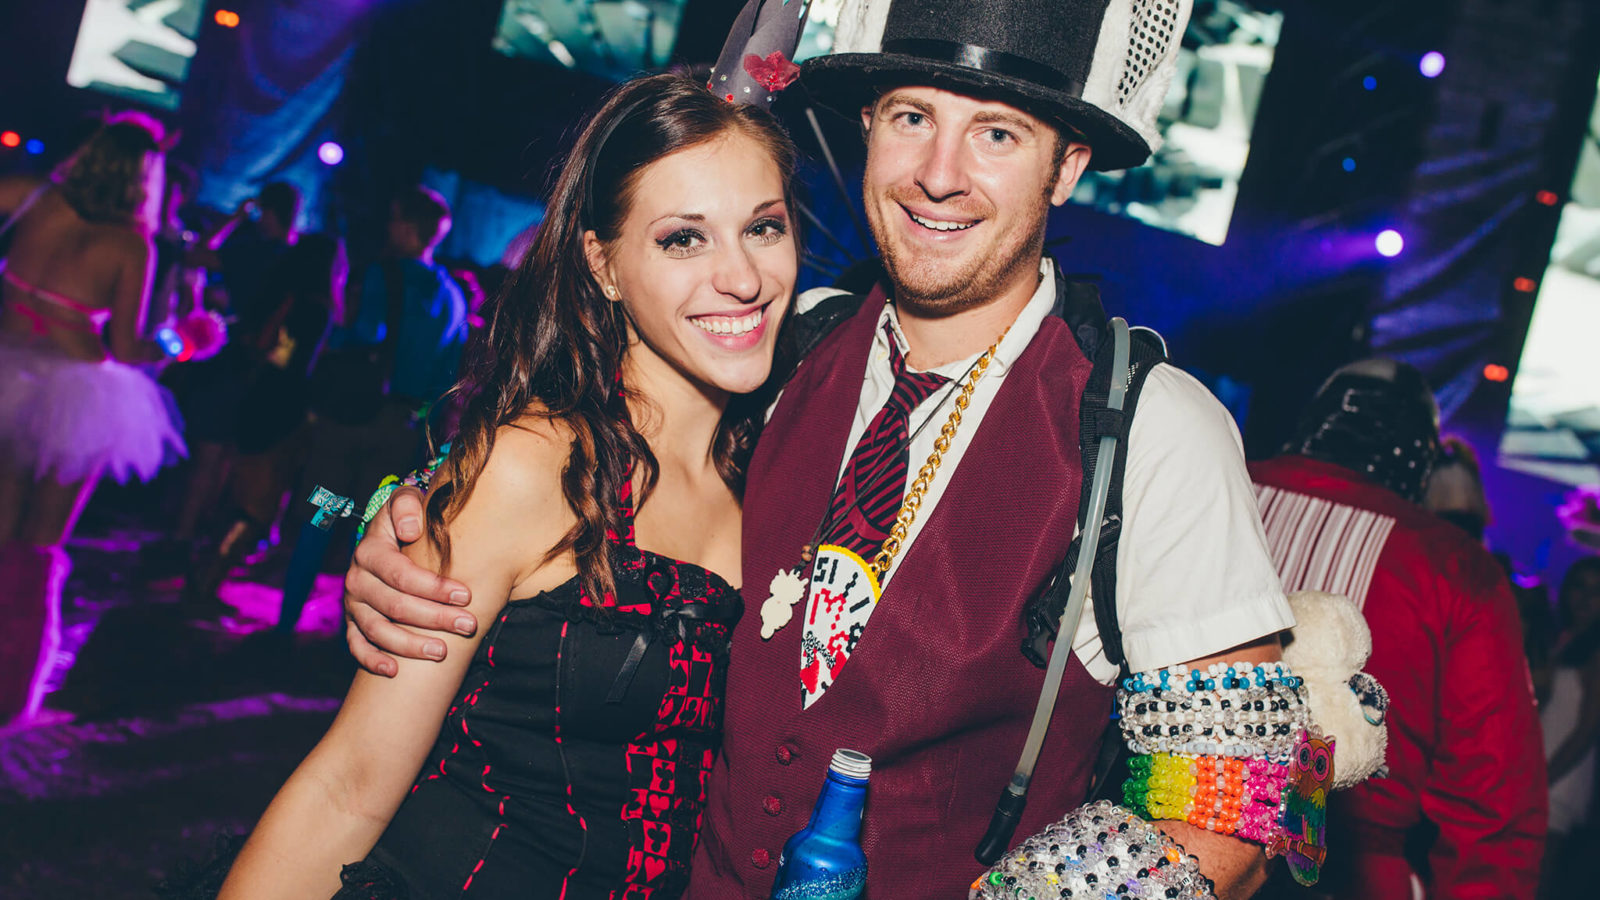 costumed fans at something wicked